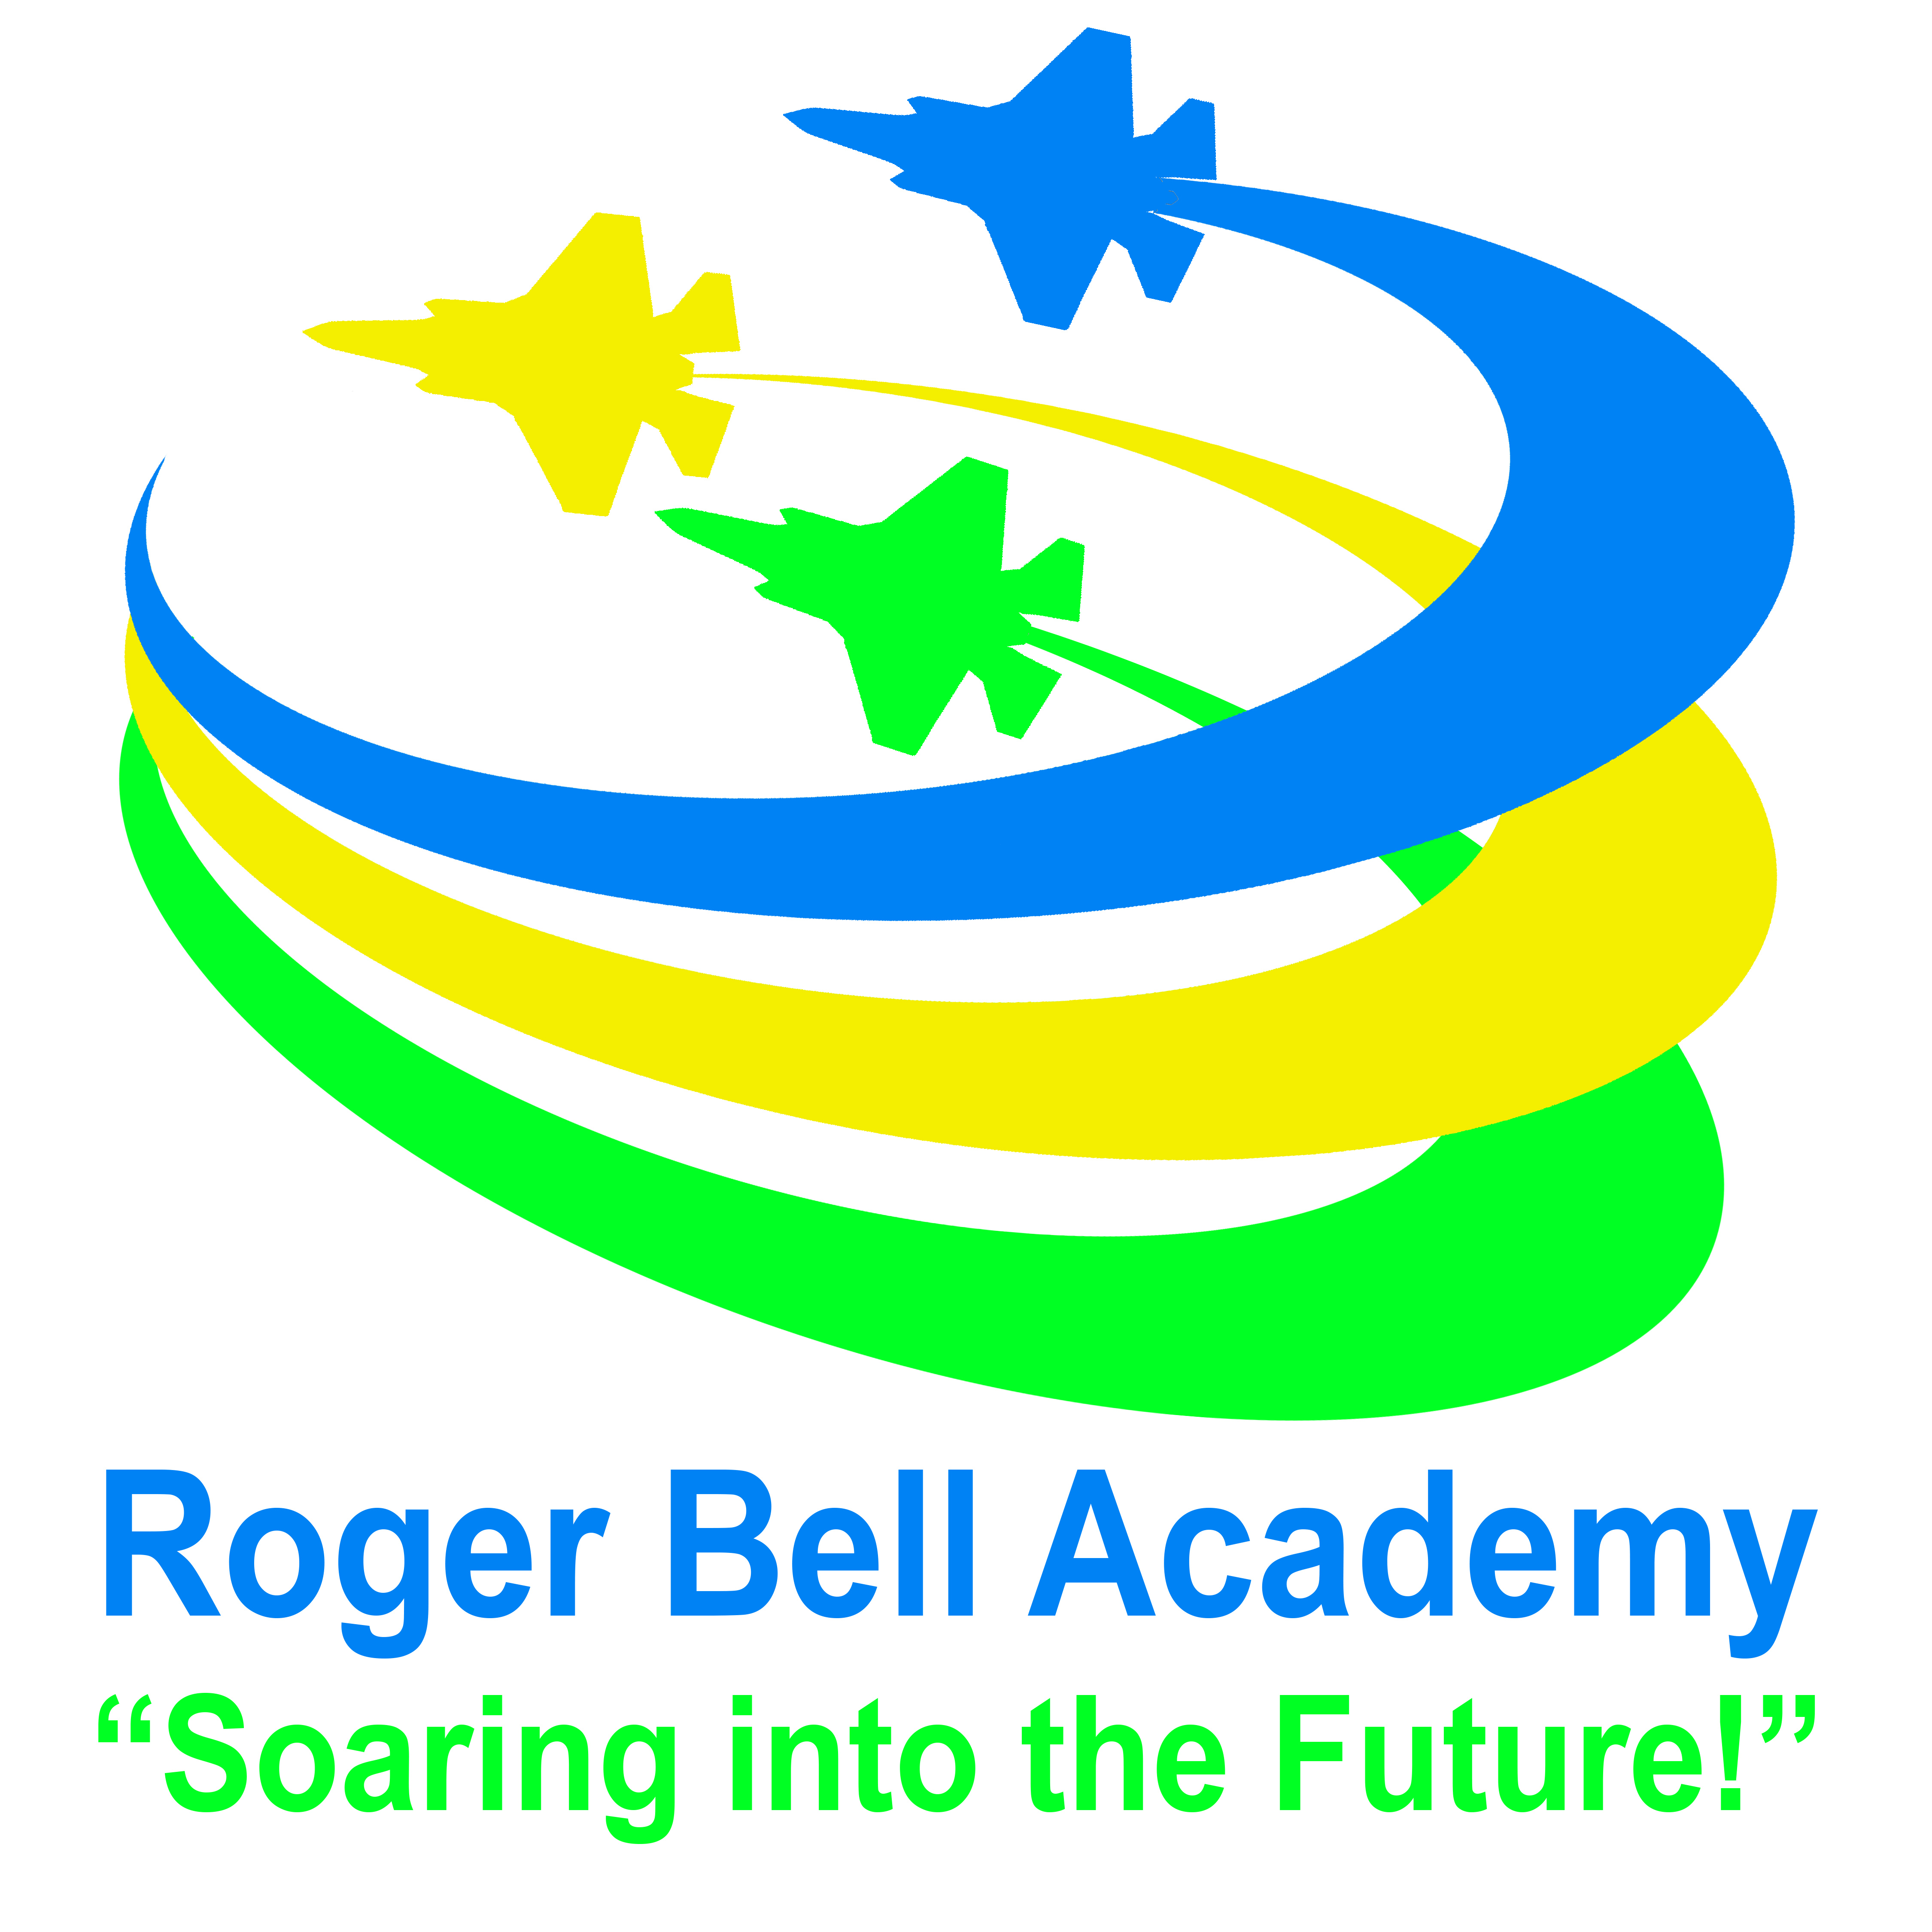 Roger Bell Academy